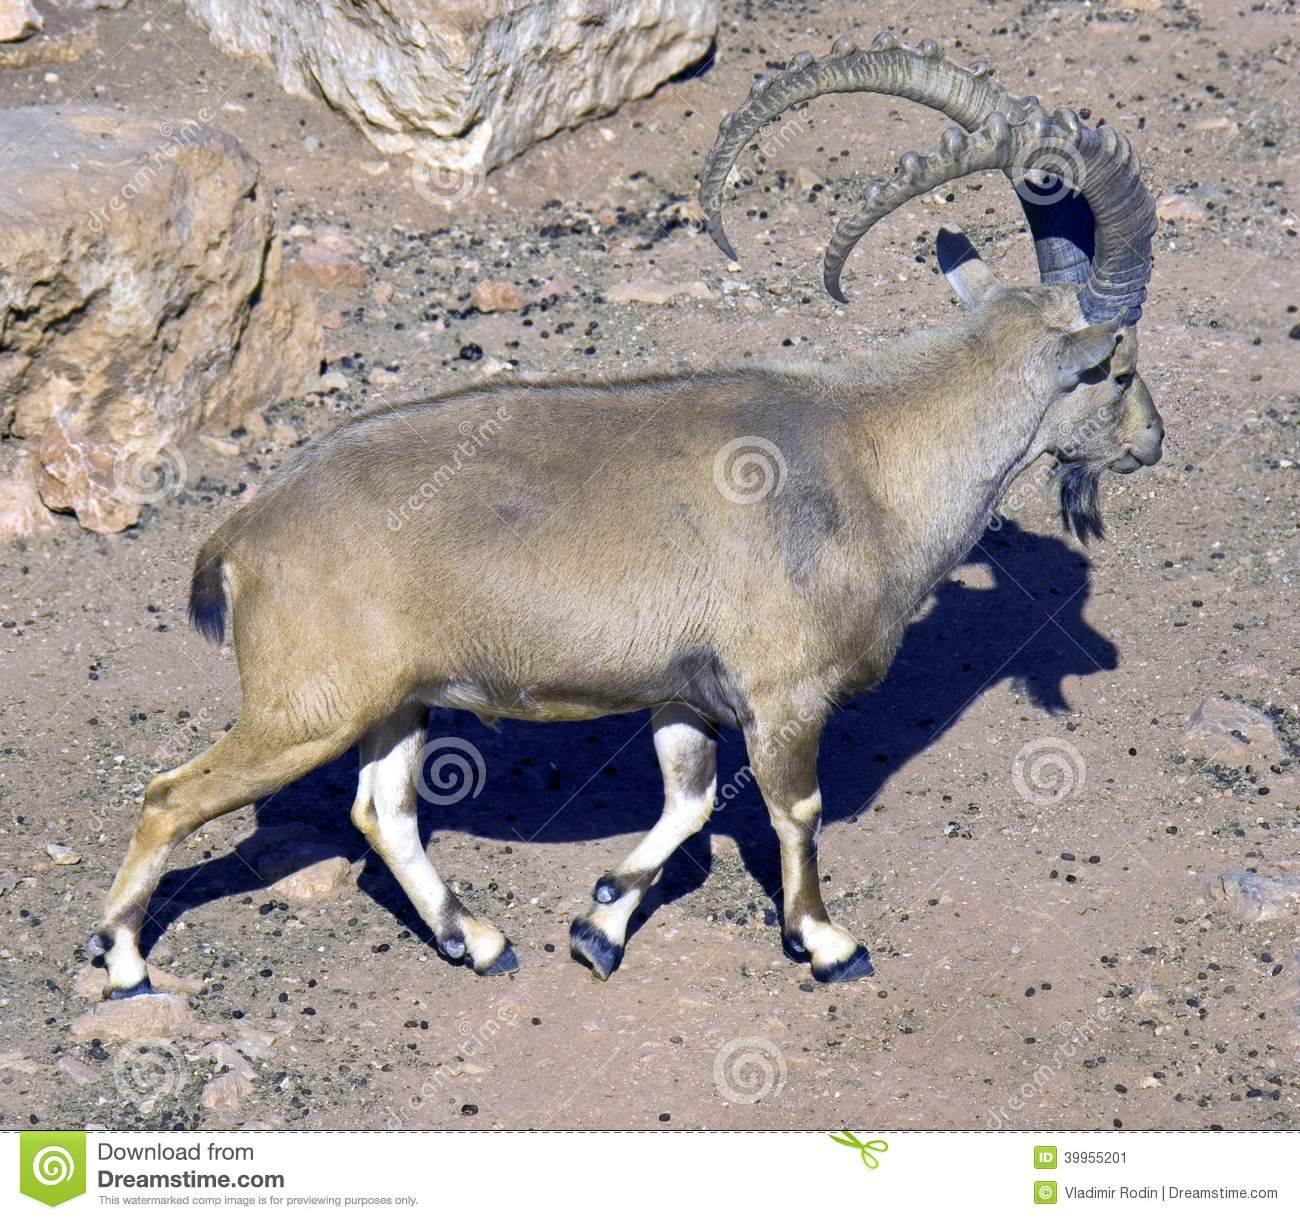 Apologise, but, asian mountain goat share